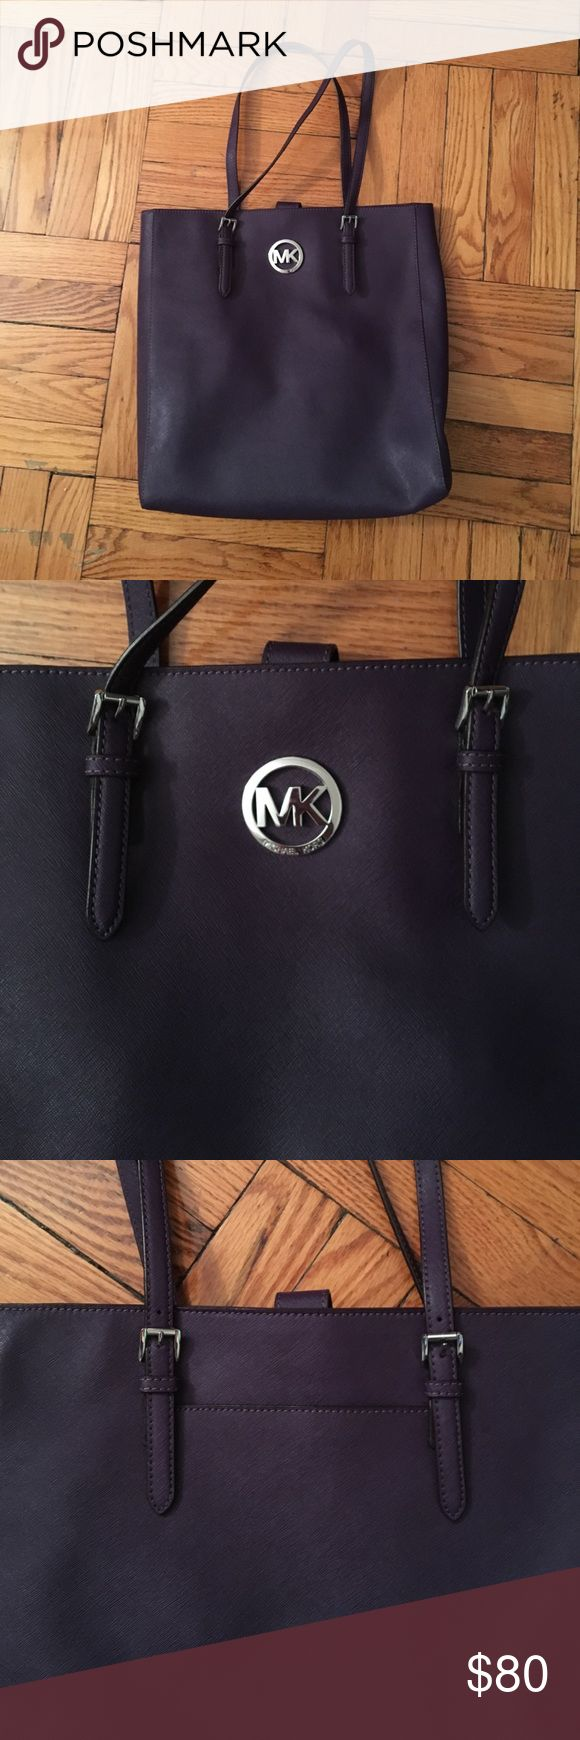 Michael Kors bag MK purple tote bag with adjustable straps. Inside and outside pockets Michael Kors Bags Totes